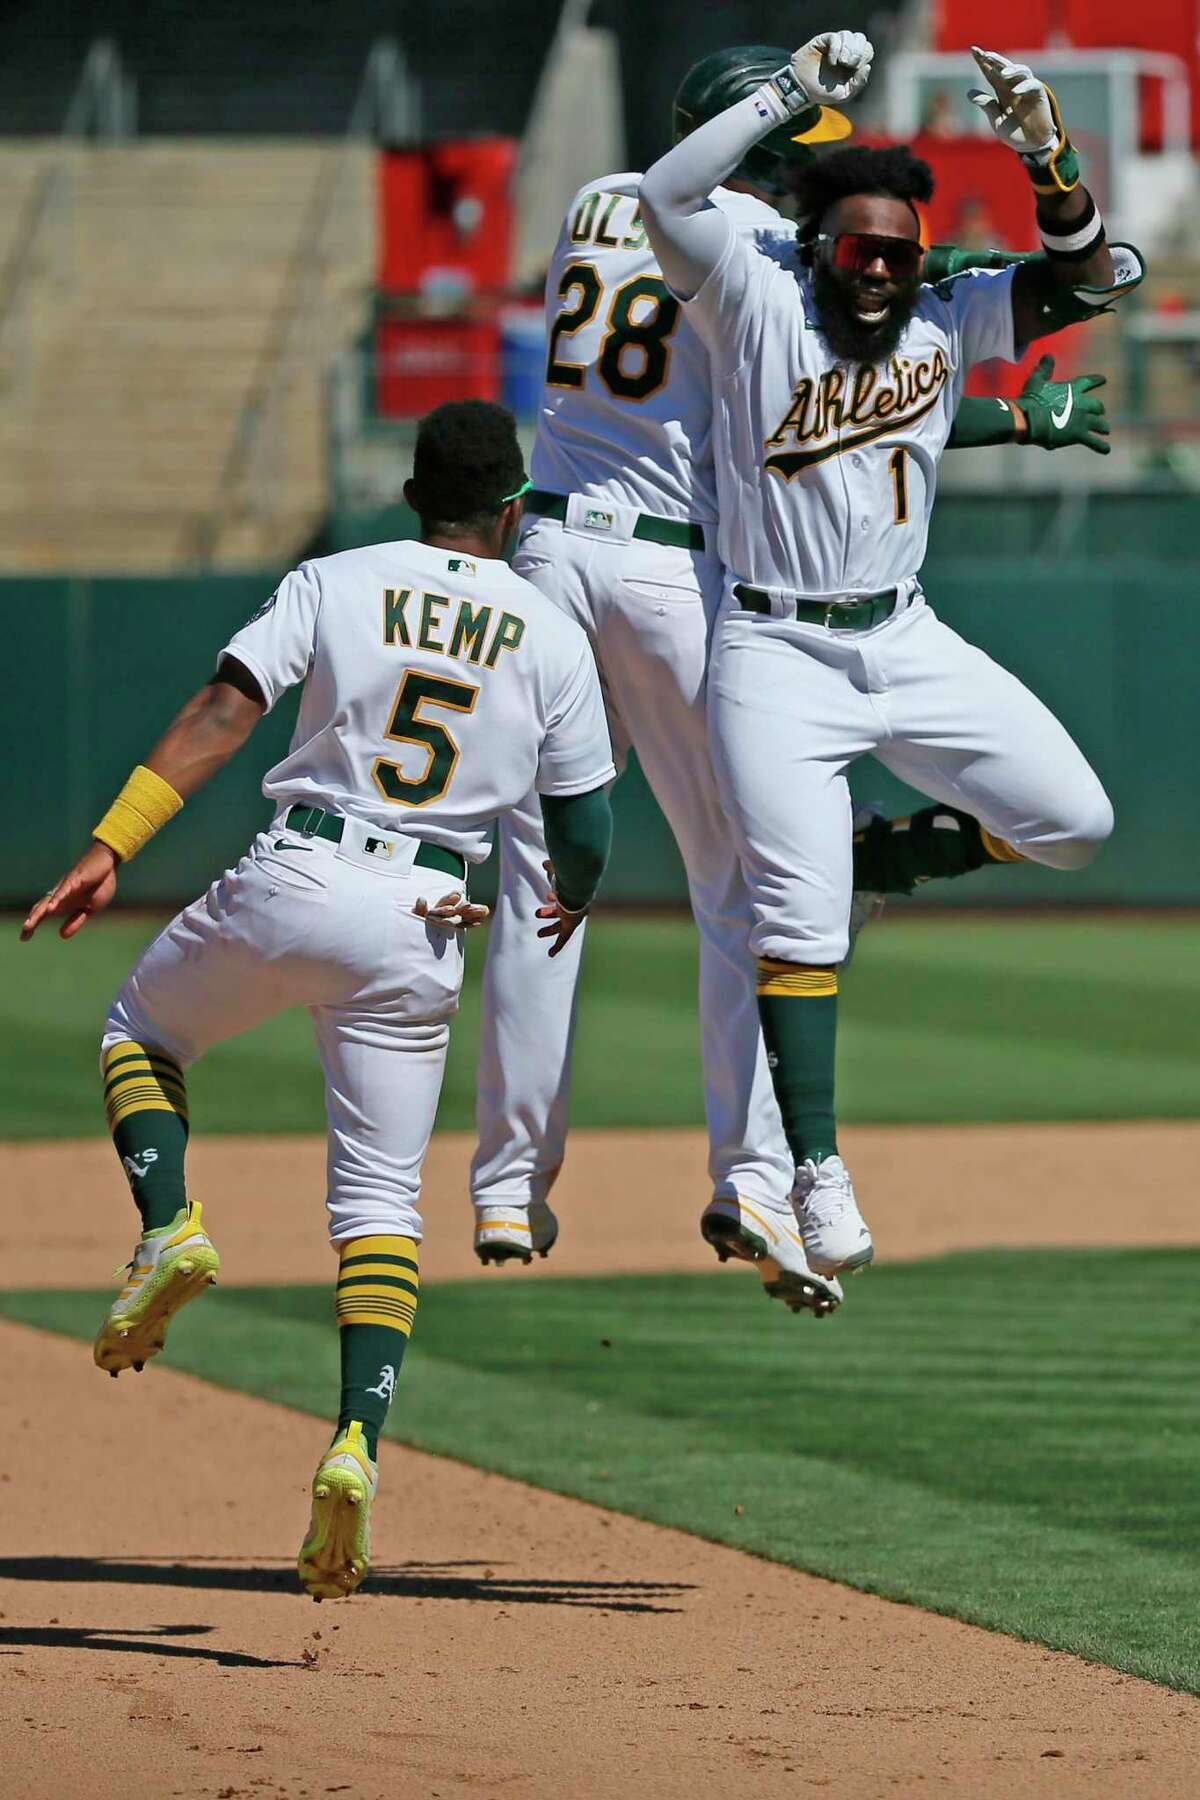 Oakland Athletics Matt Olson (28) celebrates his walk-off hit with the A's Josh Harrison (1) and Tony Kemp (5) to win the MLB game against the San Diego Padres in the tenth inning at RingCentral Coliseum on Wednesday, Aug. 4, 2021, in Oakland, Calif. The Athletics won 5-4.